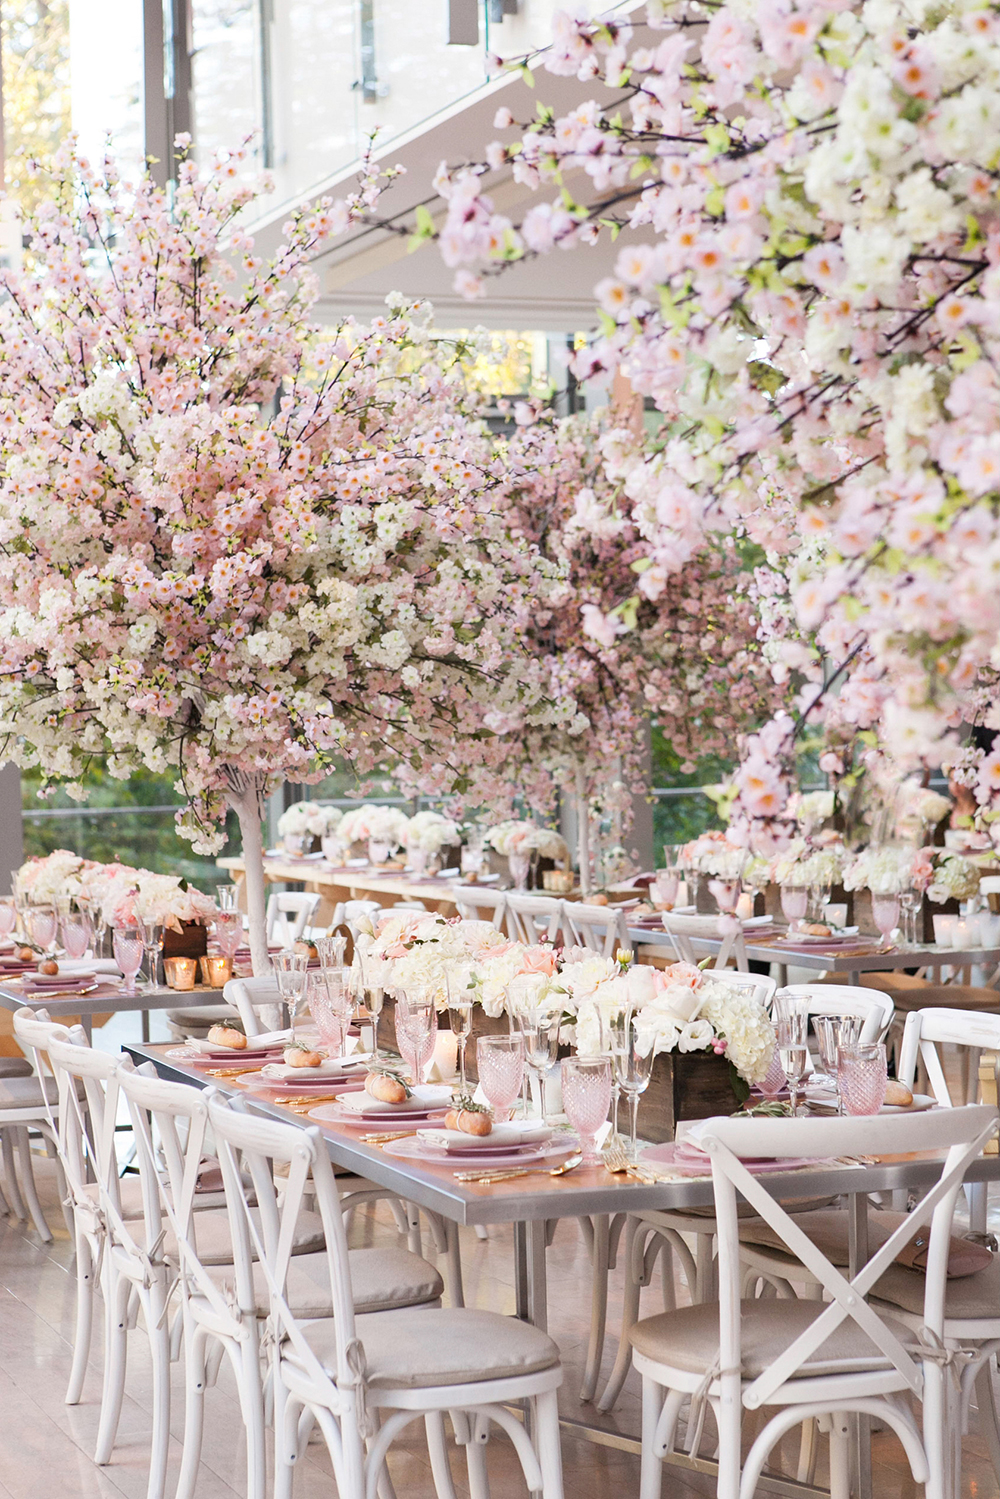 pink floral wedding receptions - photo by 5ive15ifteen http://ruffledblog.com/elegant-wedding-at-the-toronto-royal-conservatory-of-music